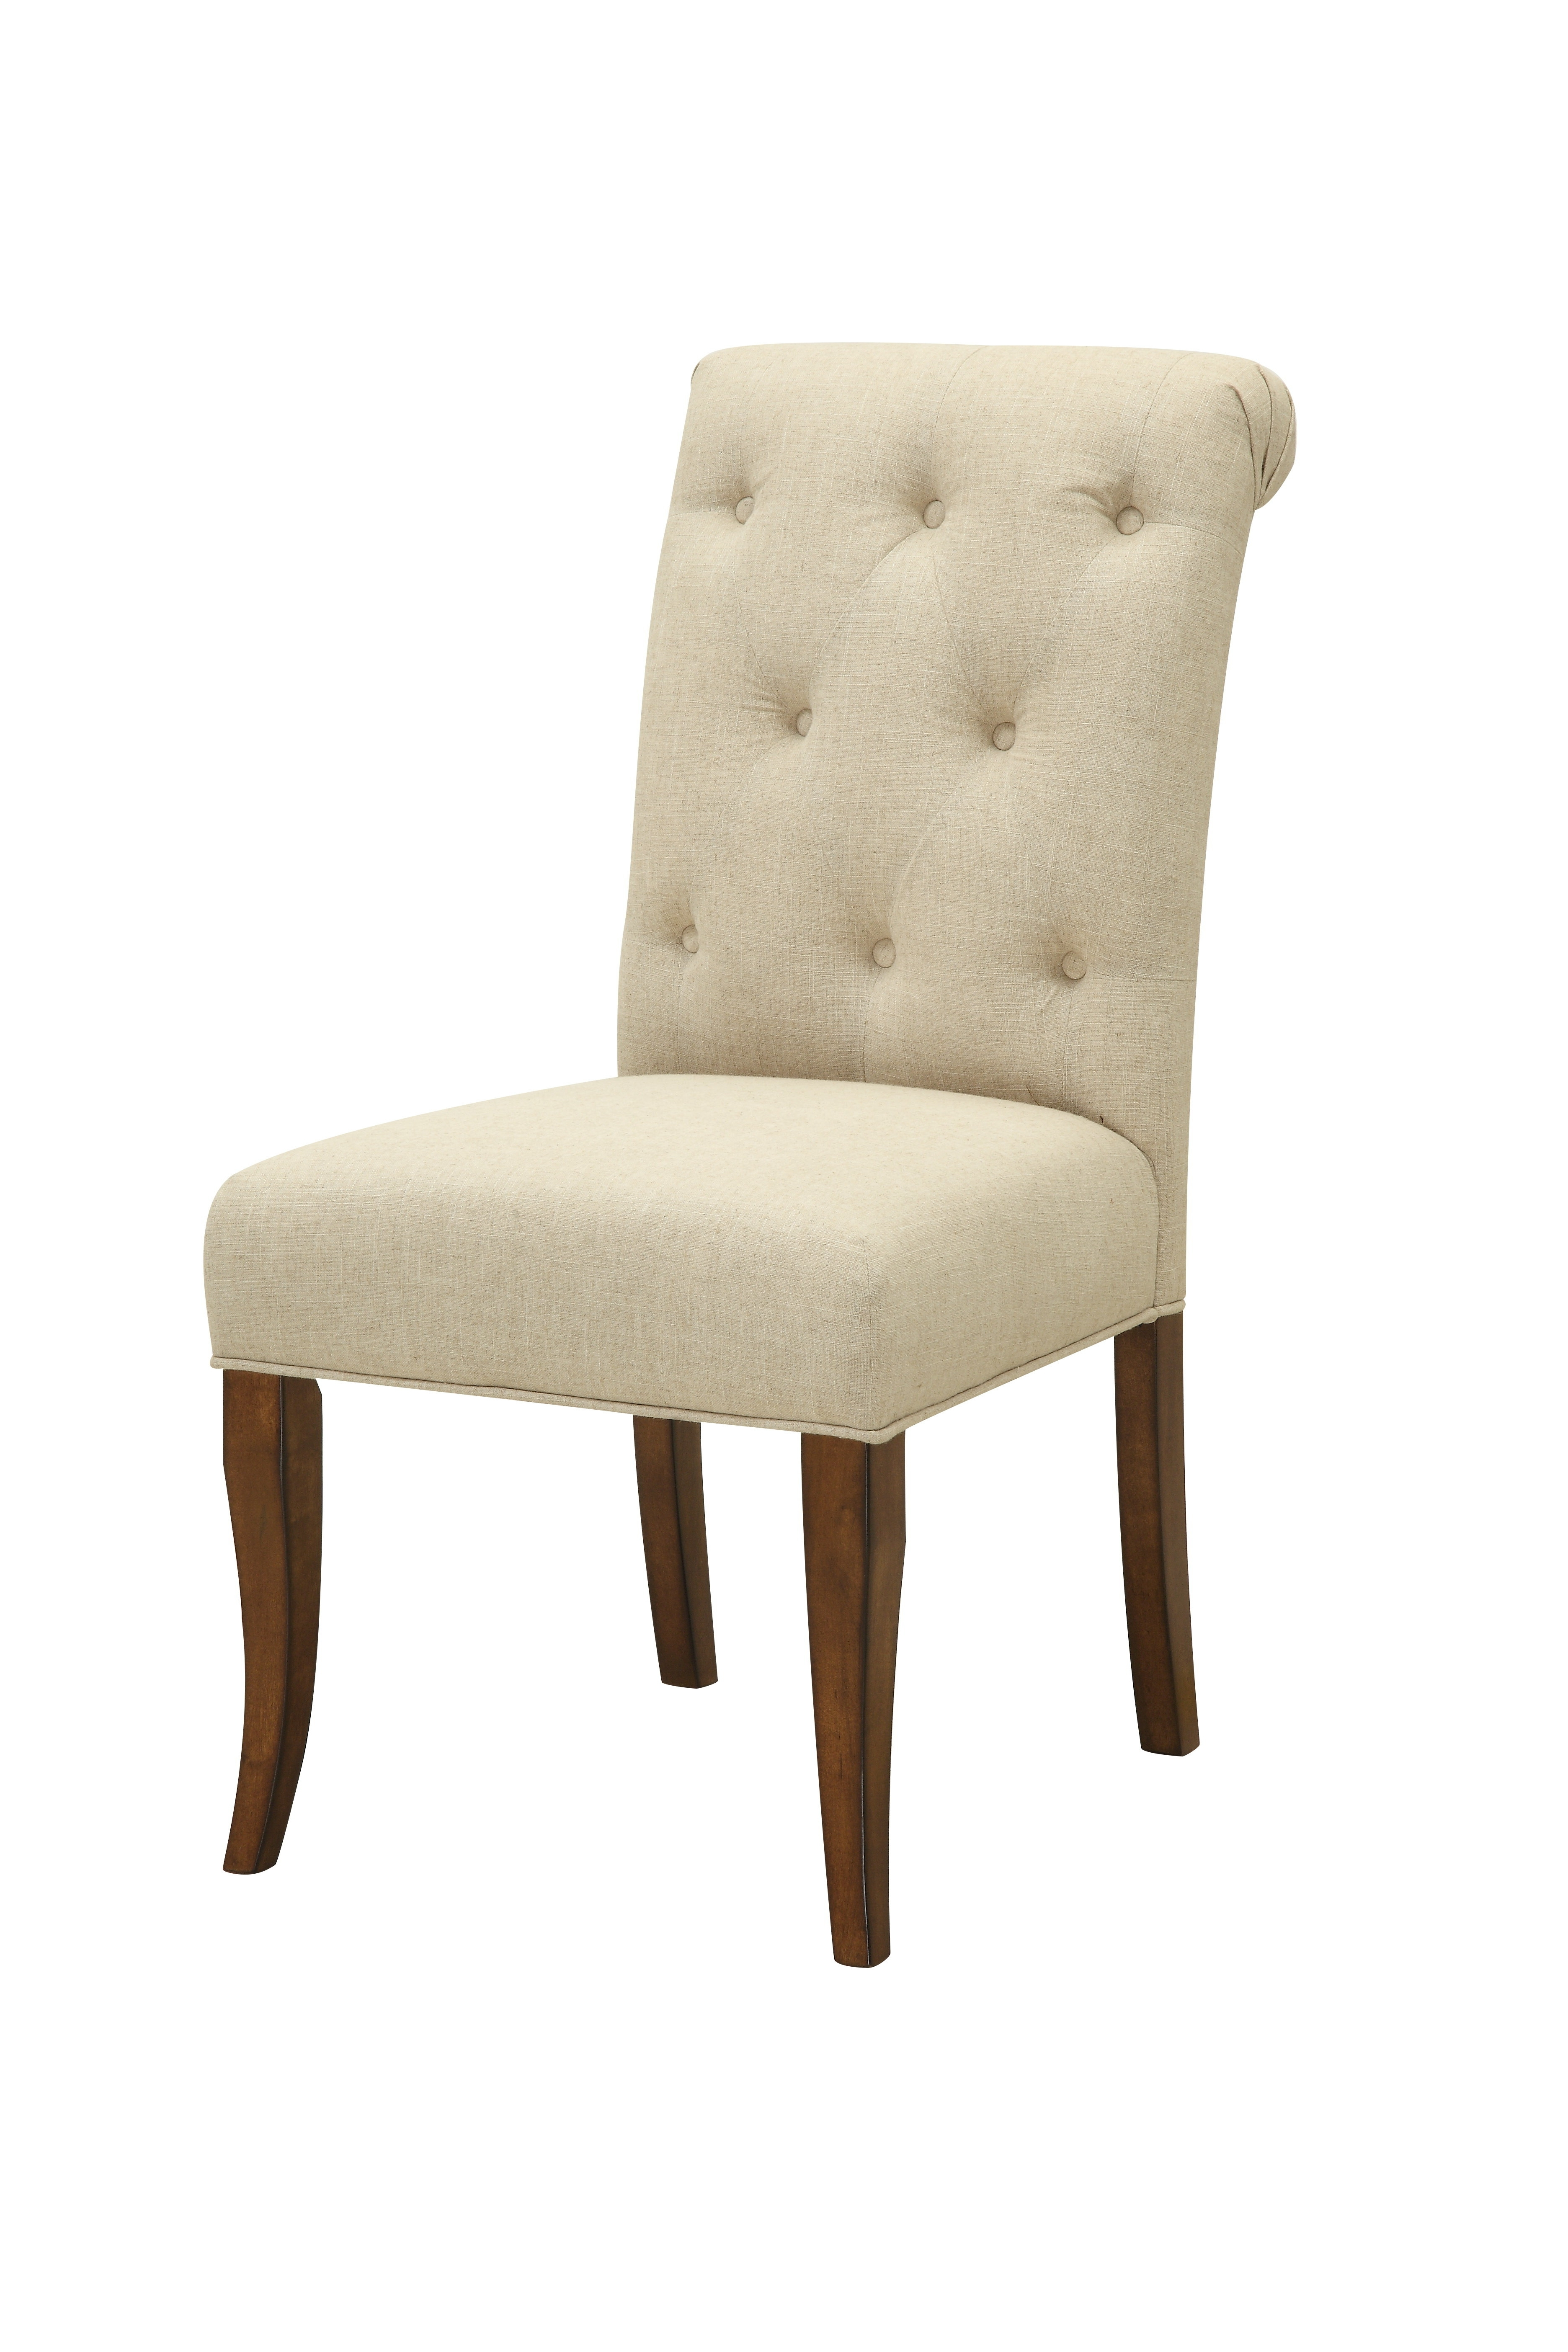 Wayfair Pertaining To 2018 Candice Ii Slat Back Side Chairs (View 19 of 20)